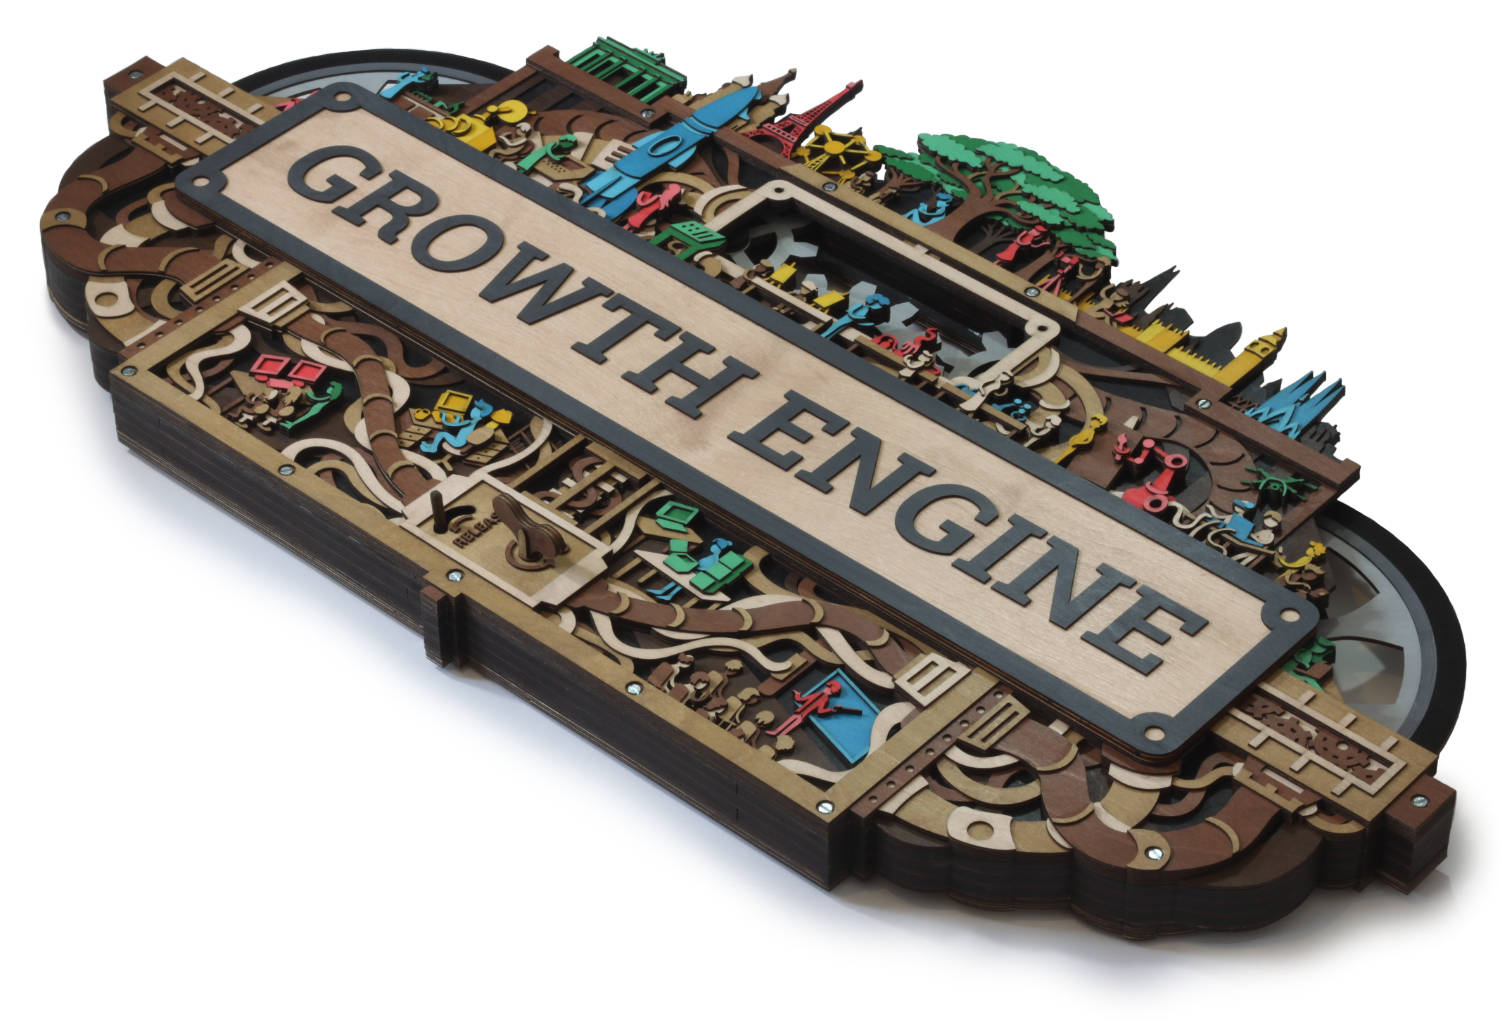 Growth Engine 3.jpg